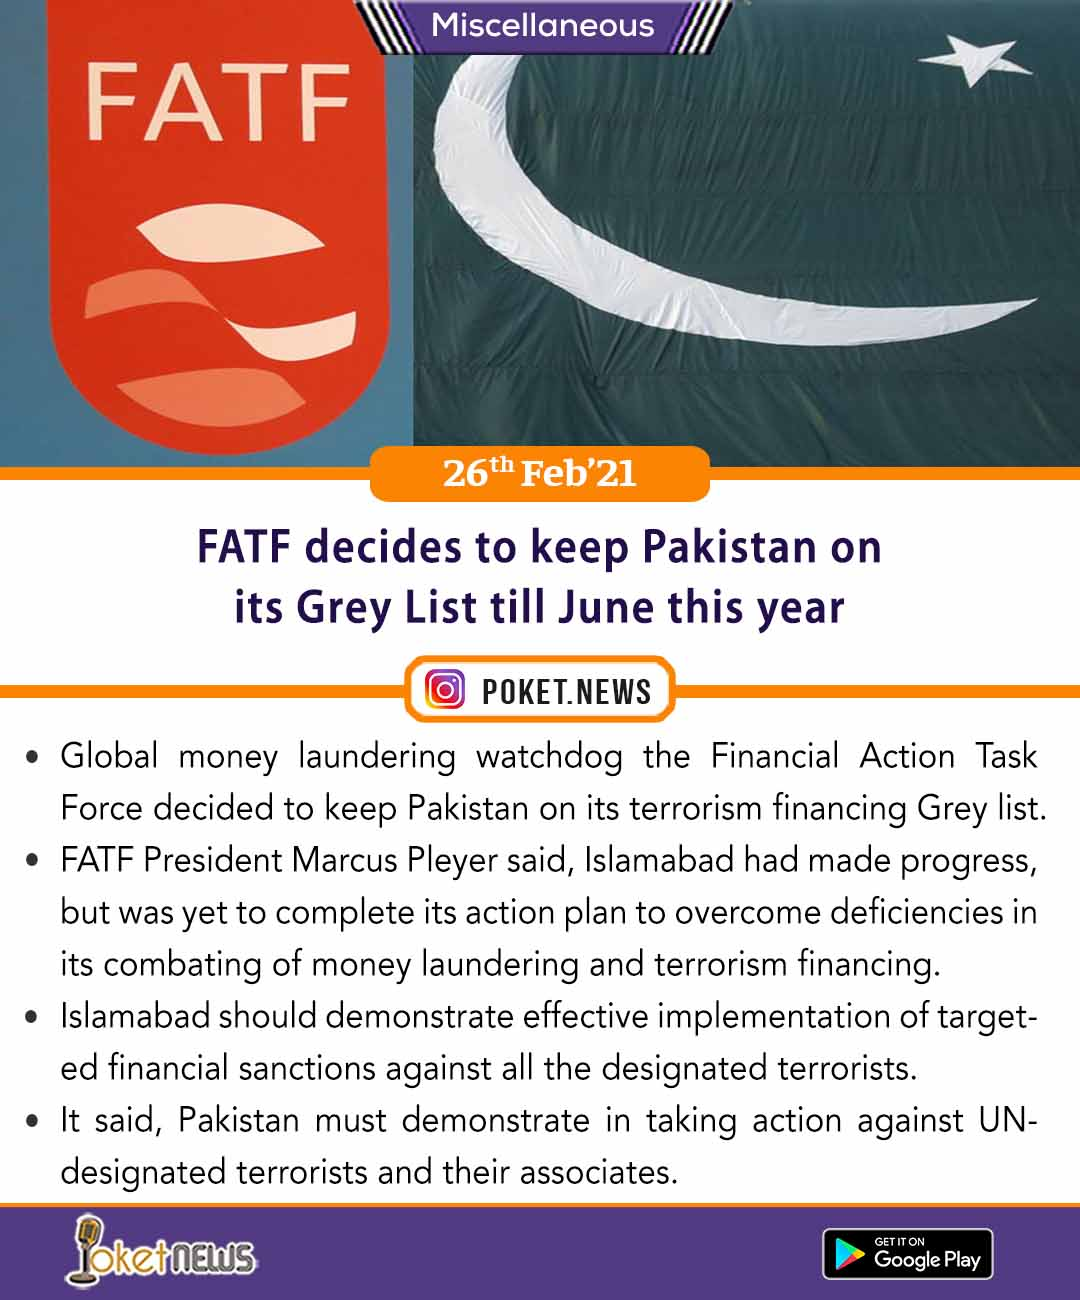 FATF decides to keep Pakistan on its Grey List till June this year